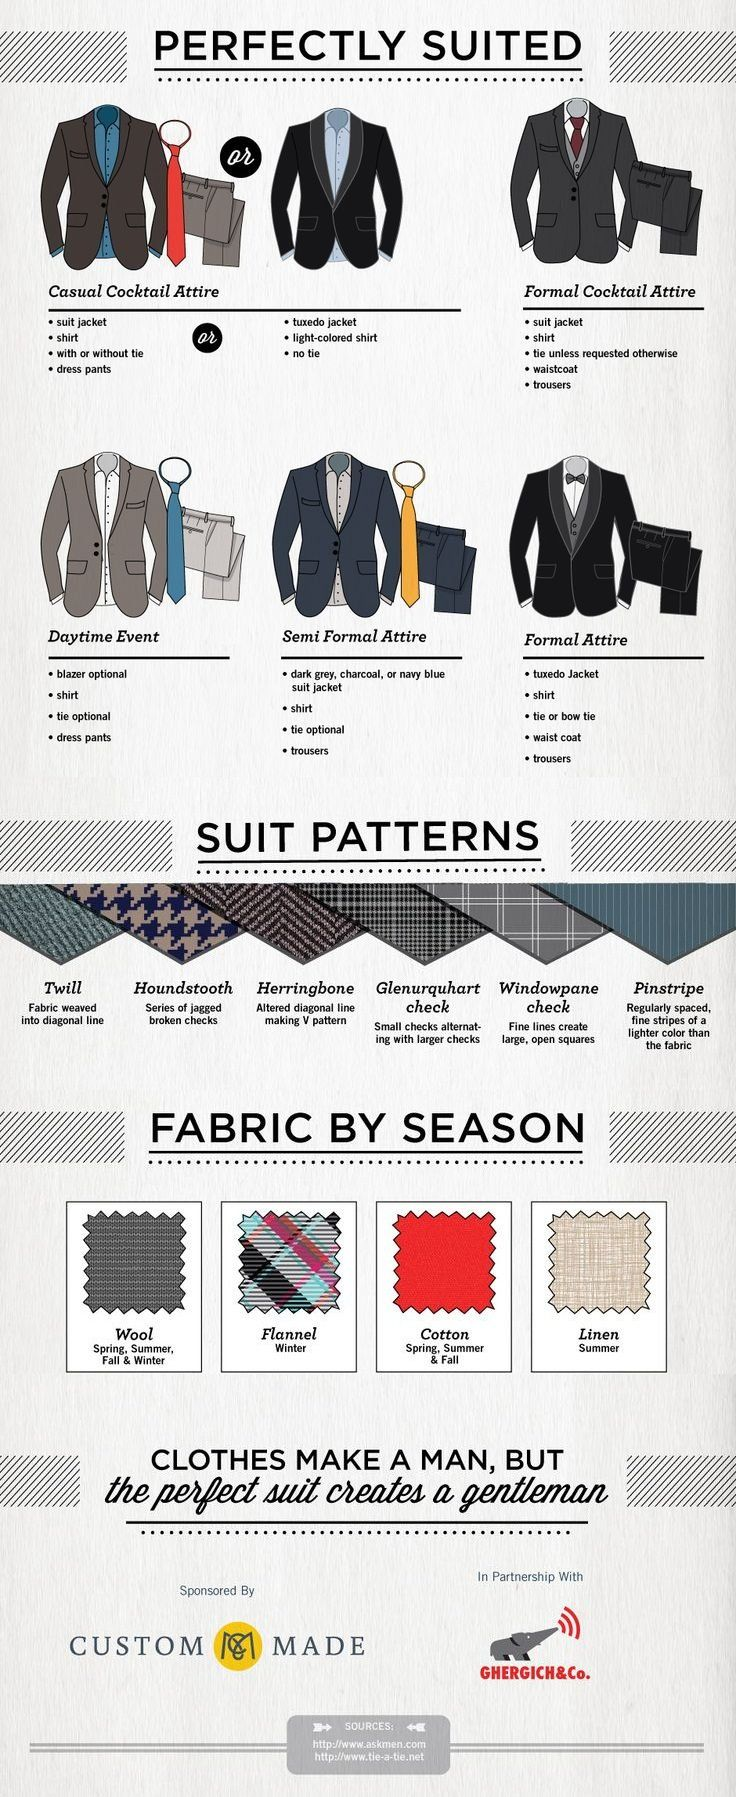 dapper style guide, perfect suit style guide